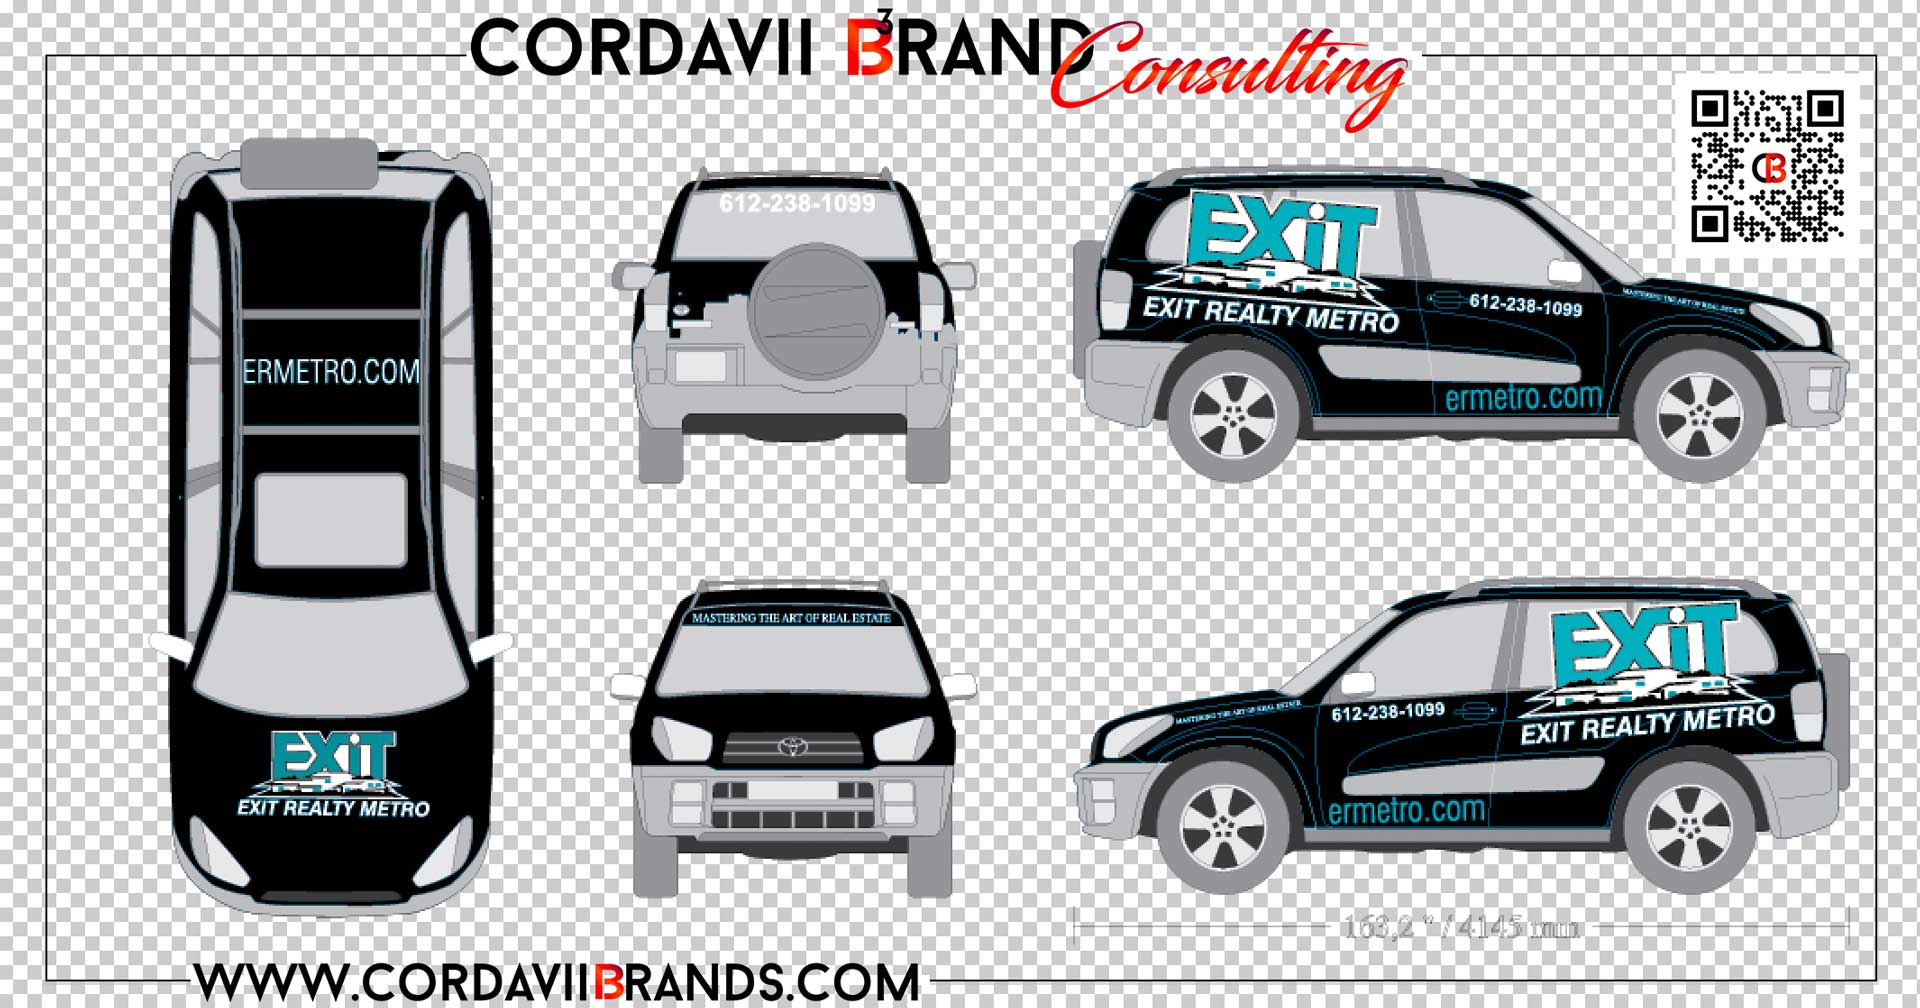 vehicle car wrap design by cordavii brand consulting